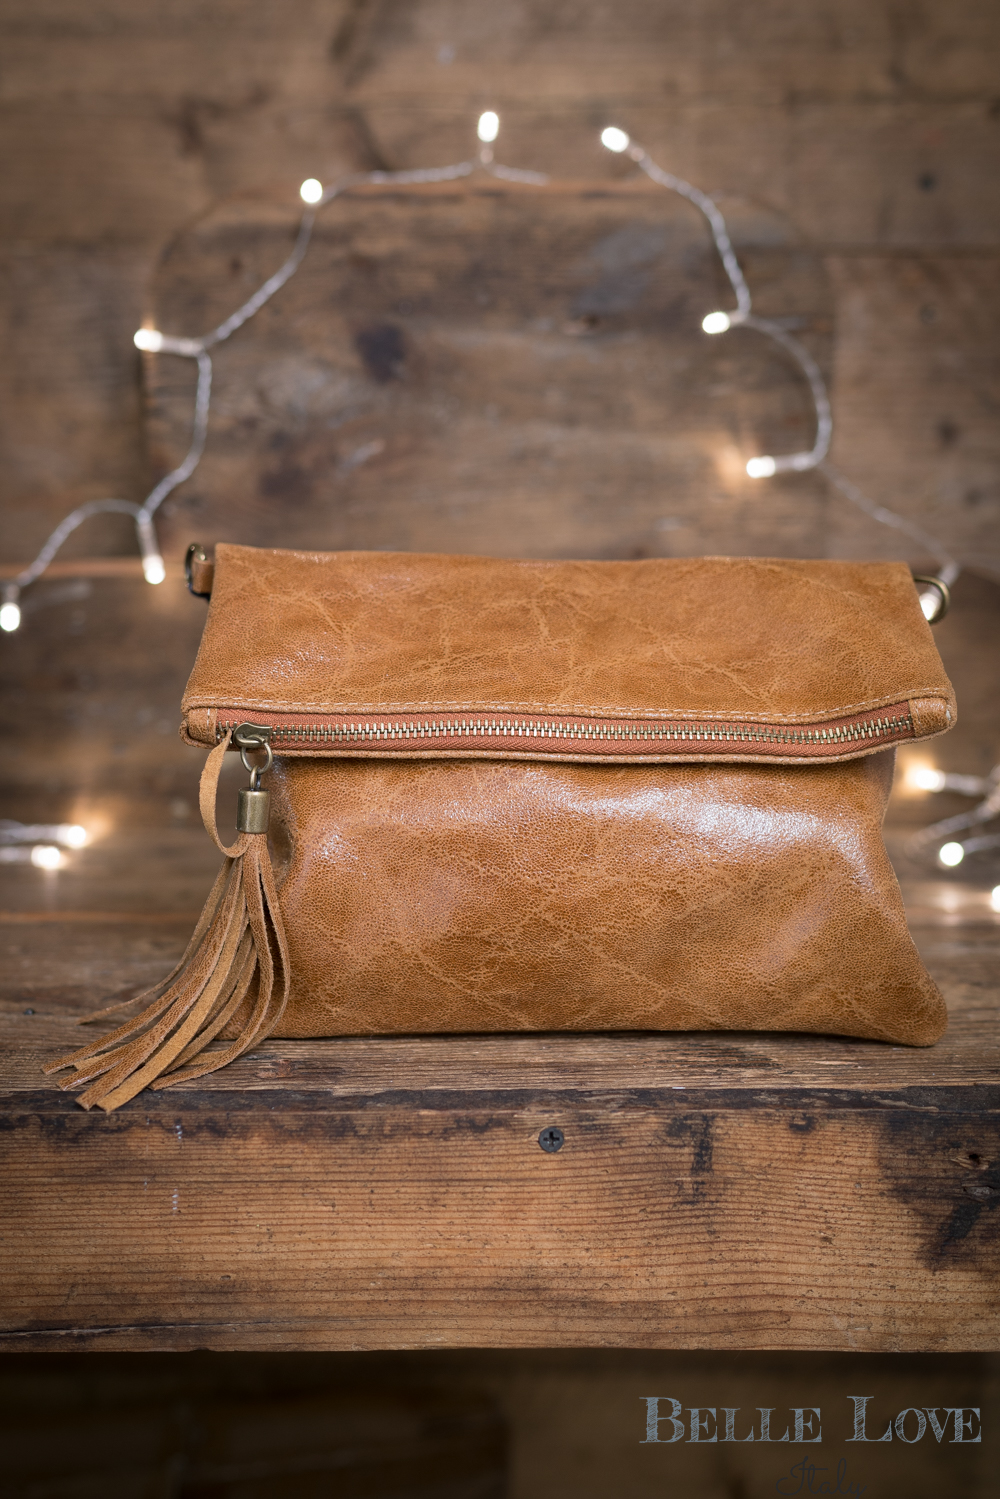 Belle Love Italy Rustic Leather Clutch